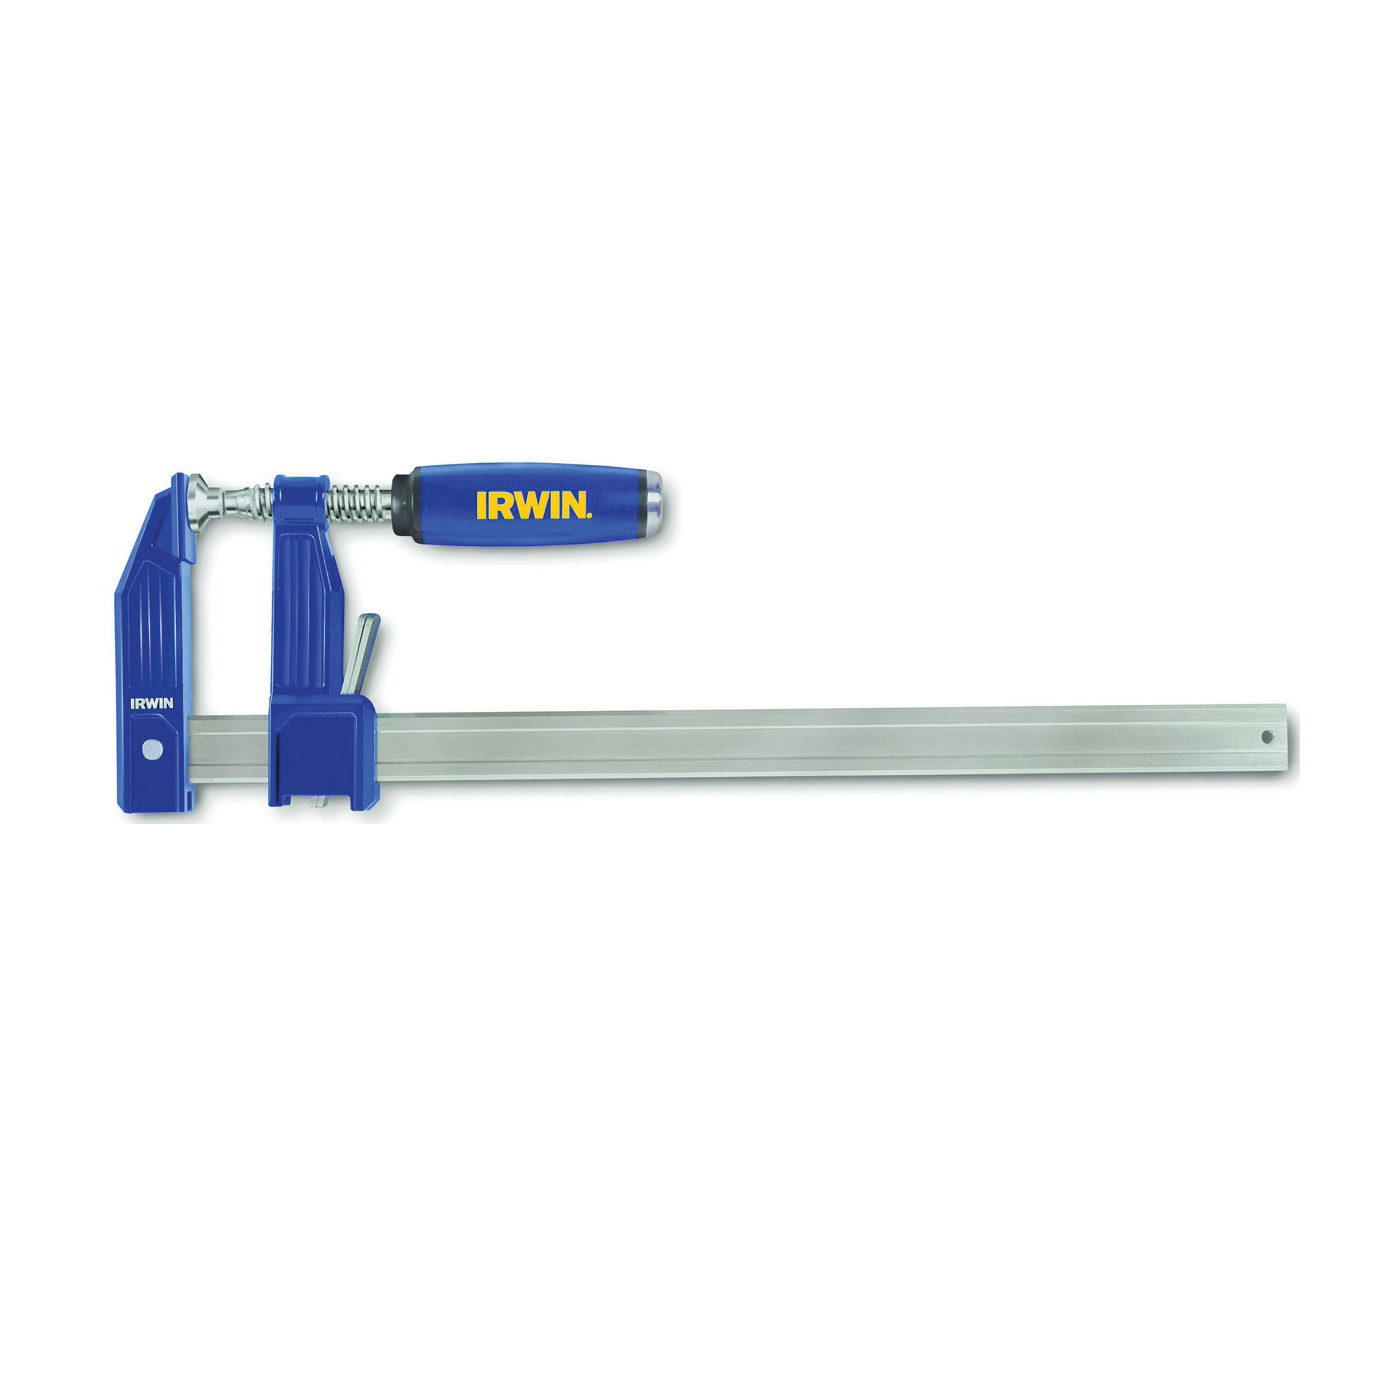 Picture of IRWIN QUICK-GRIP 223136 Medium-Duty Bar Clamp, 36 in Max Opening Size, 3-1/8 in D Throat